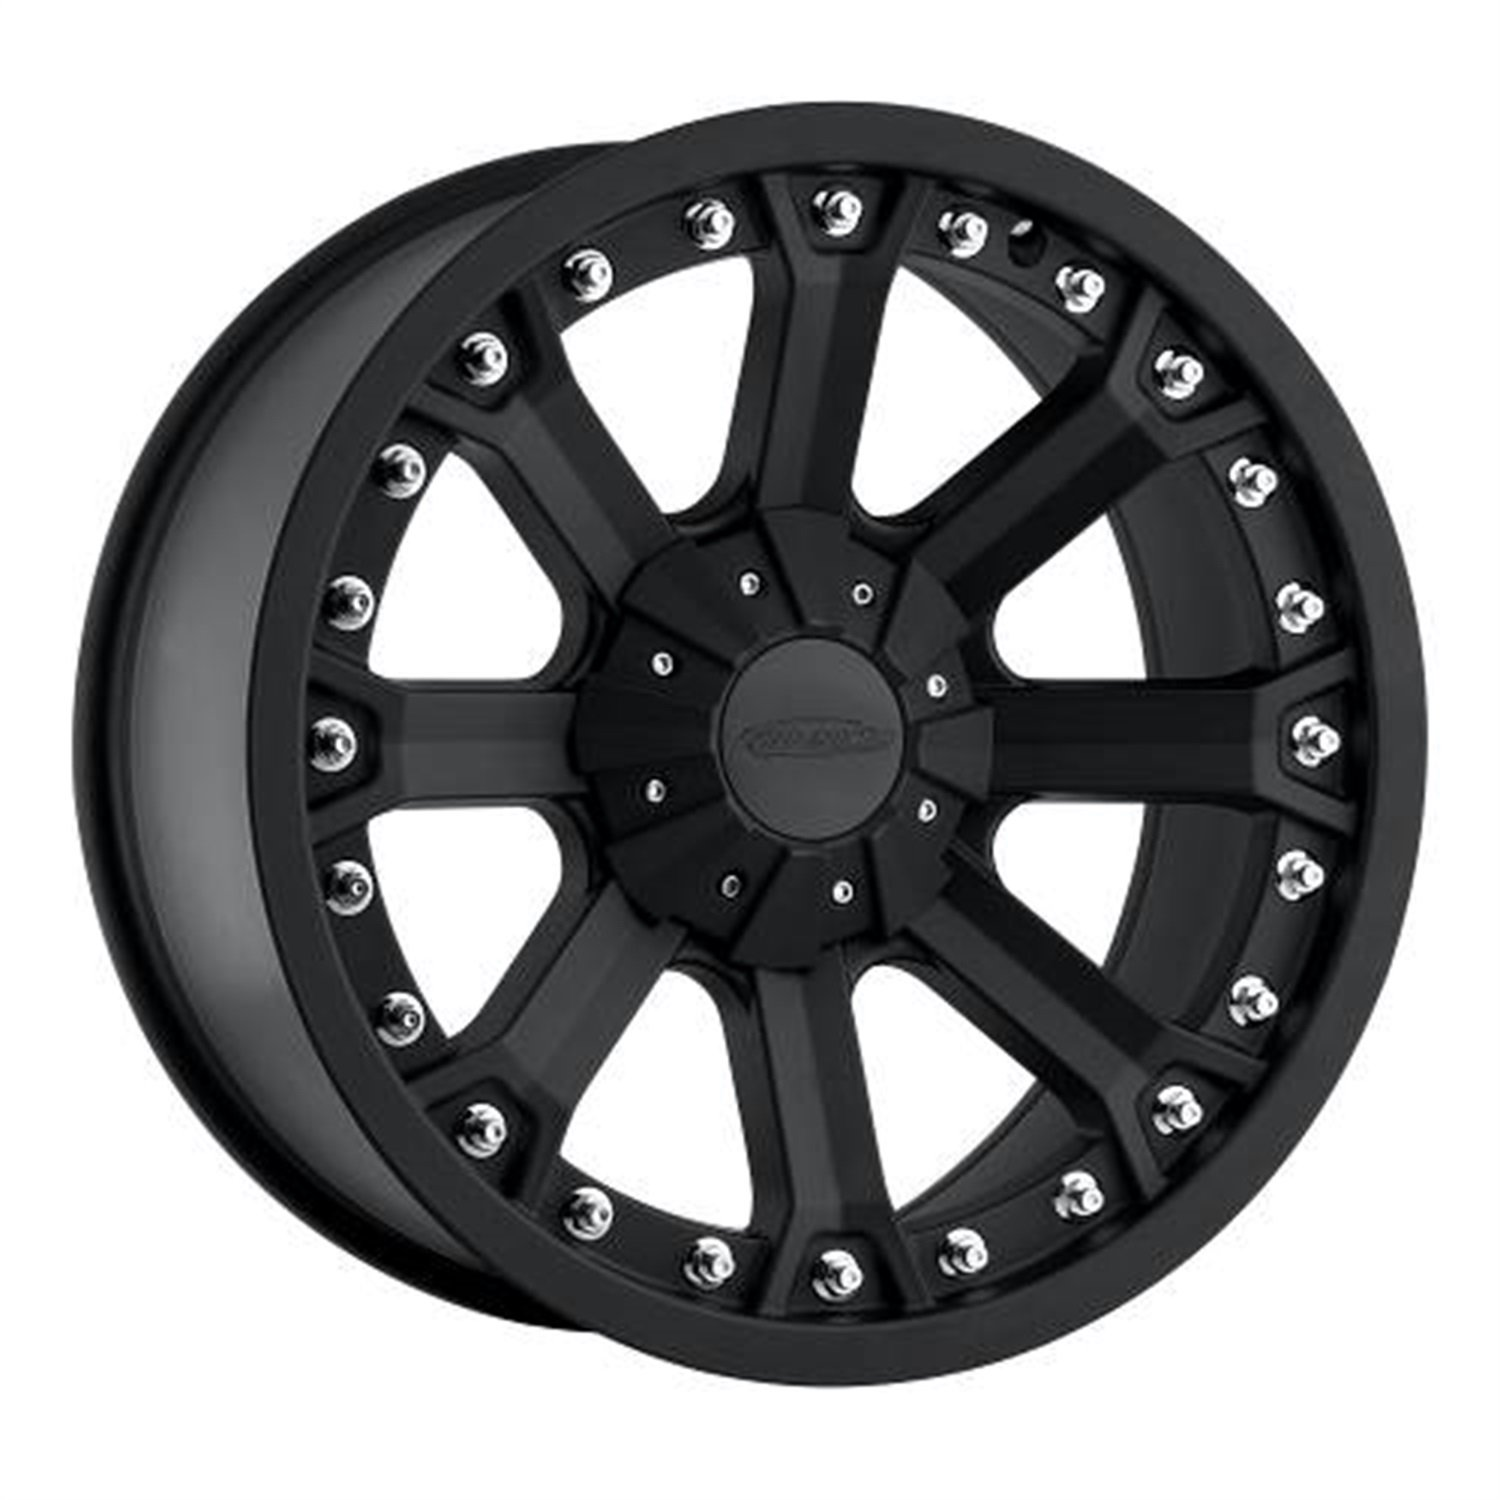 Pro Comp Alloys Series 33 Wheel with Flat Black Finish (17x9'/6x135mm) Pro Comp Wheels PXA7033-7939